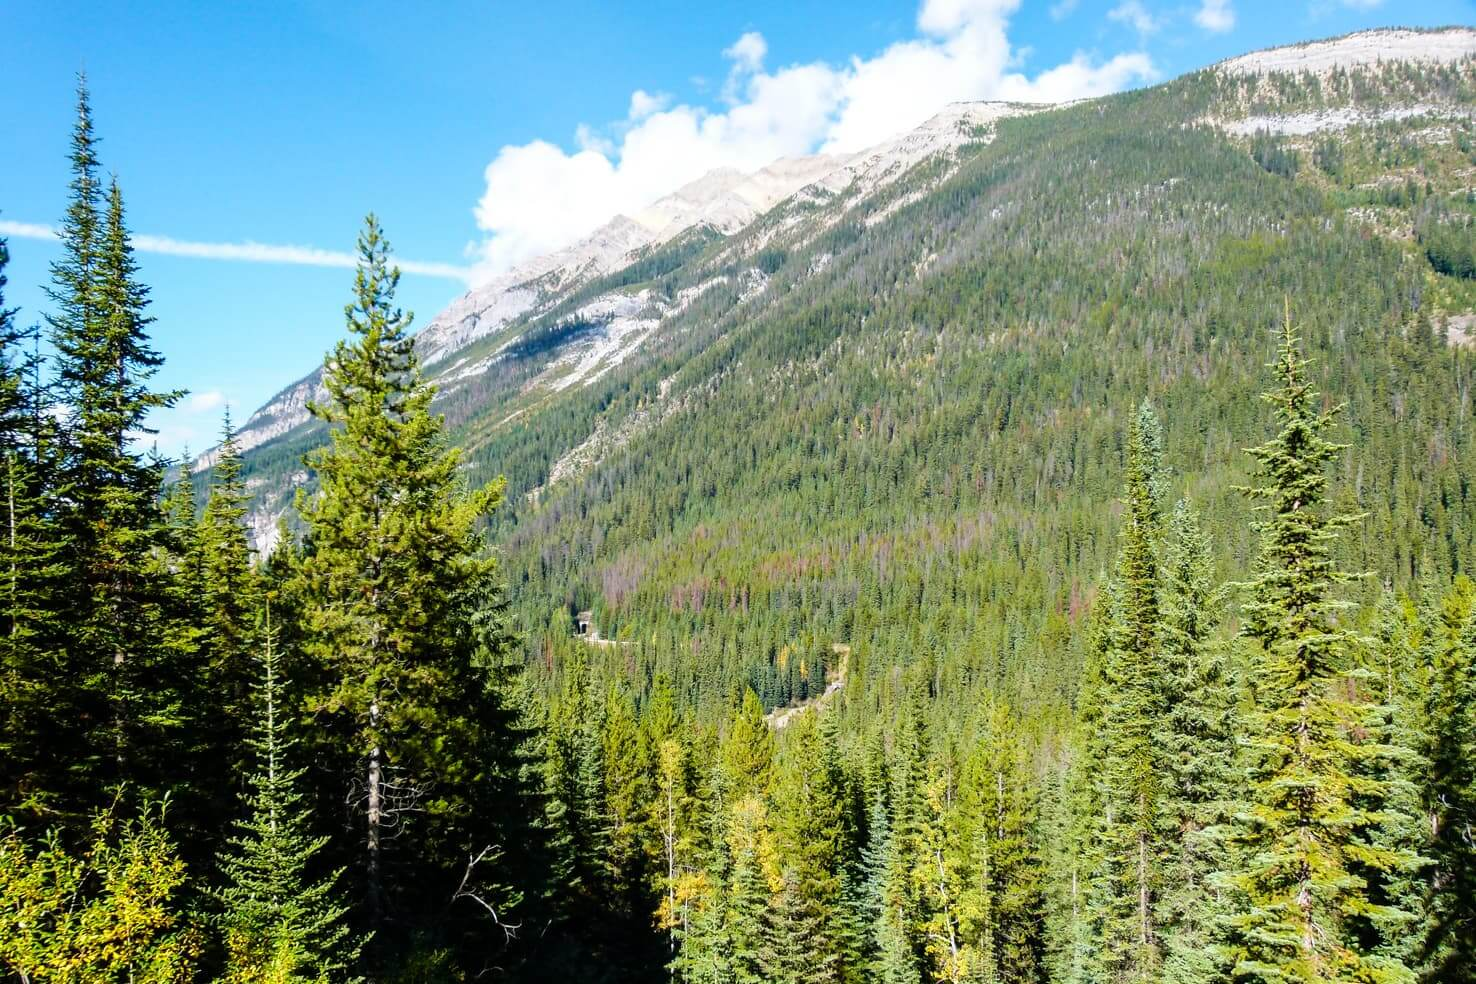 100 best things to do in Banff National Park, Canada - Watch trains disappearing in the hill